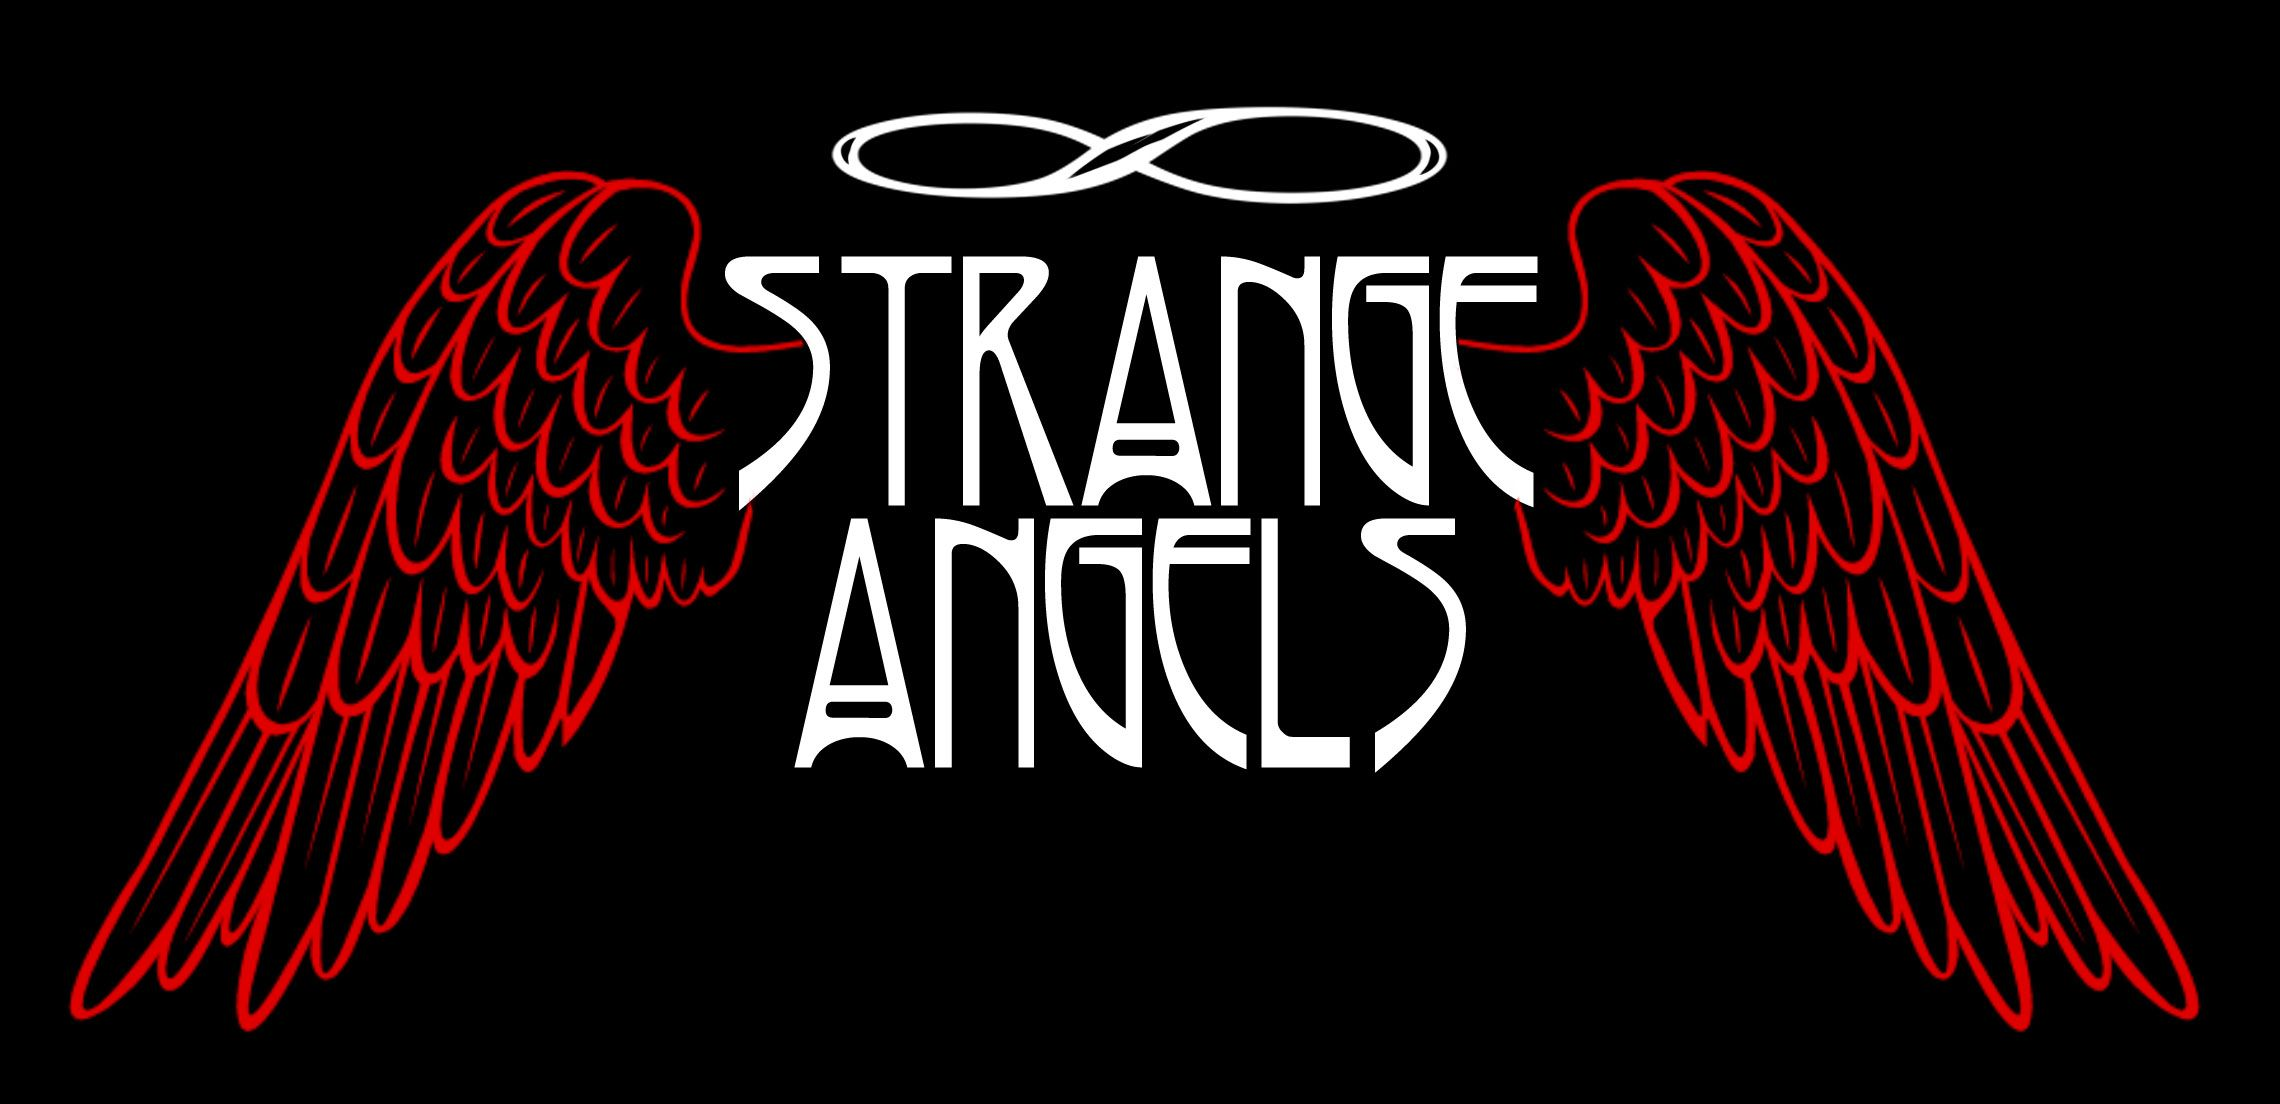 Strange Music Backgrounds, Compatible - PC, Mobile, Gadgets| 2280x1104 px